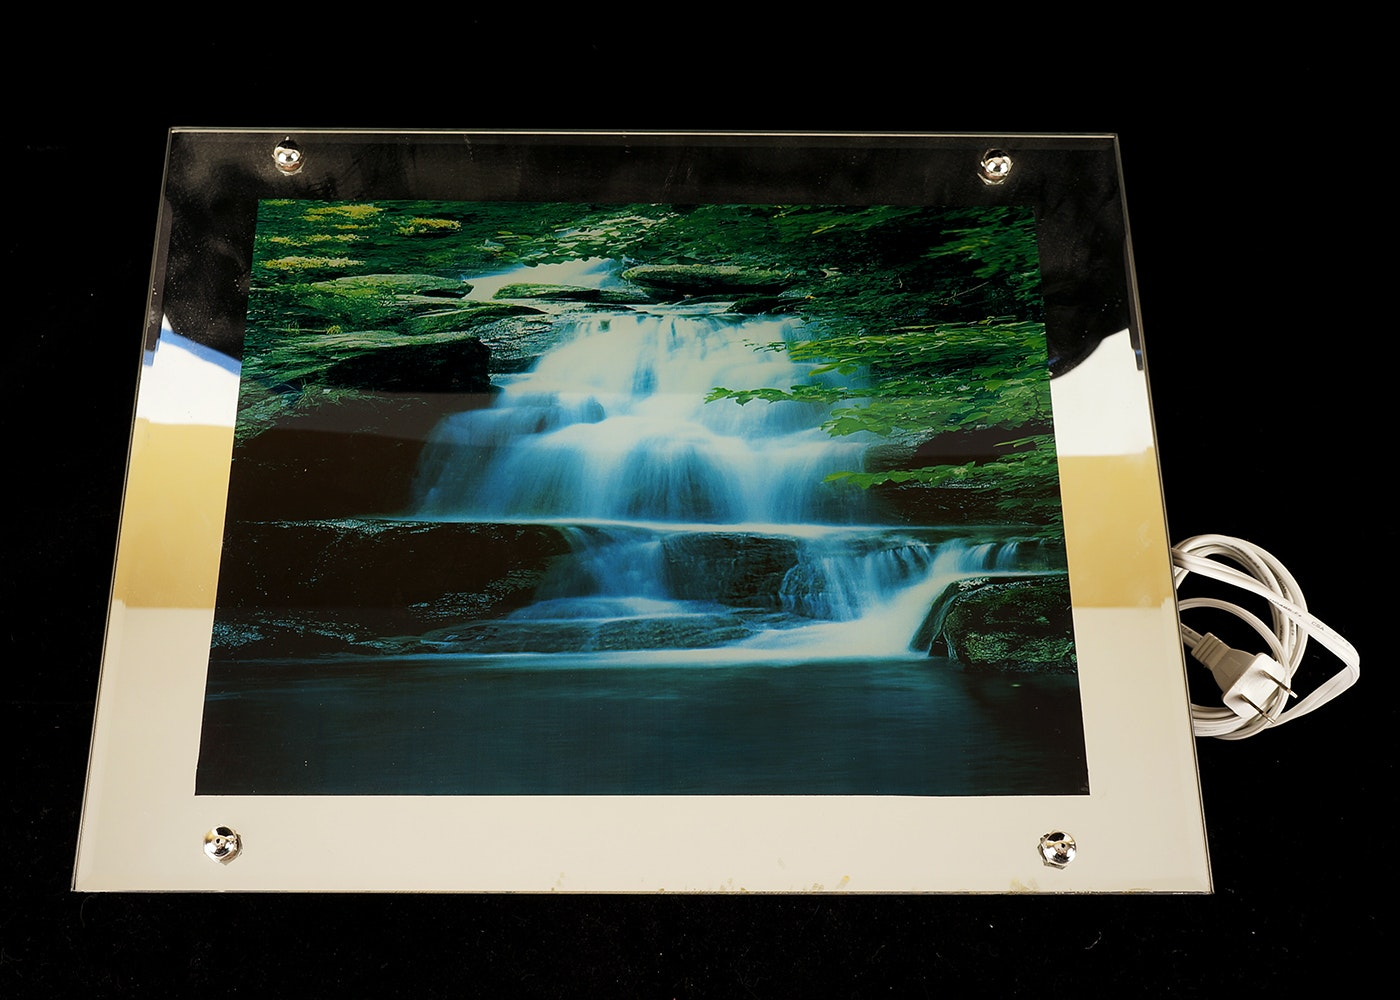 visiontac electronic waterfall picture ebth rh ebth com